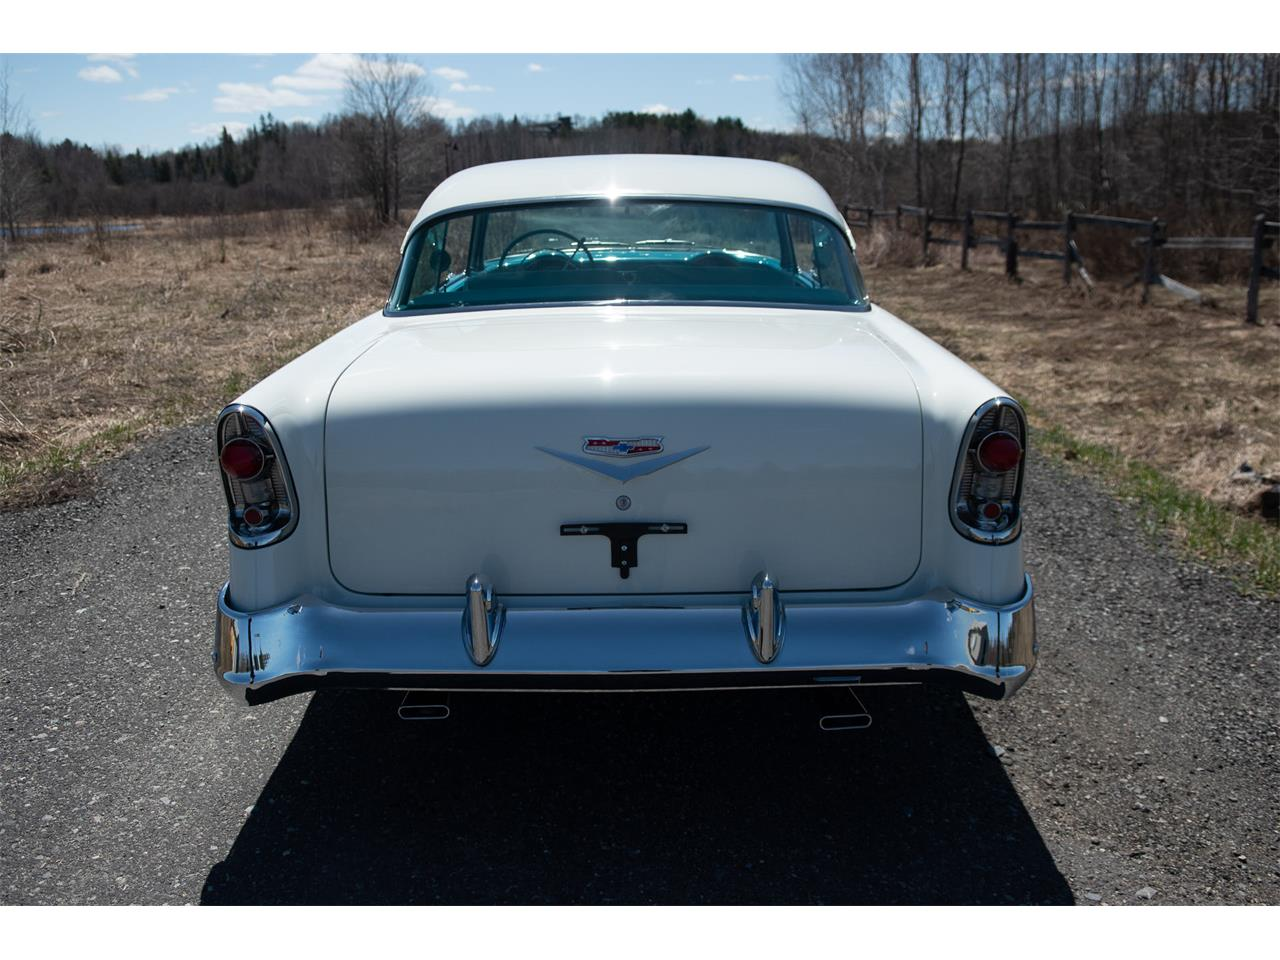 Large Picture of '56 Bel Air located in Ontario - $69,500.00 Offered by R & R Classic Cars - Q1QB